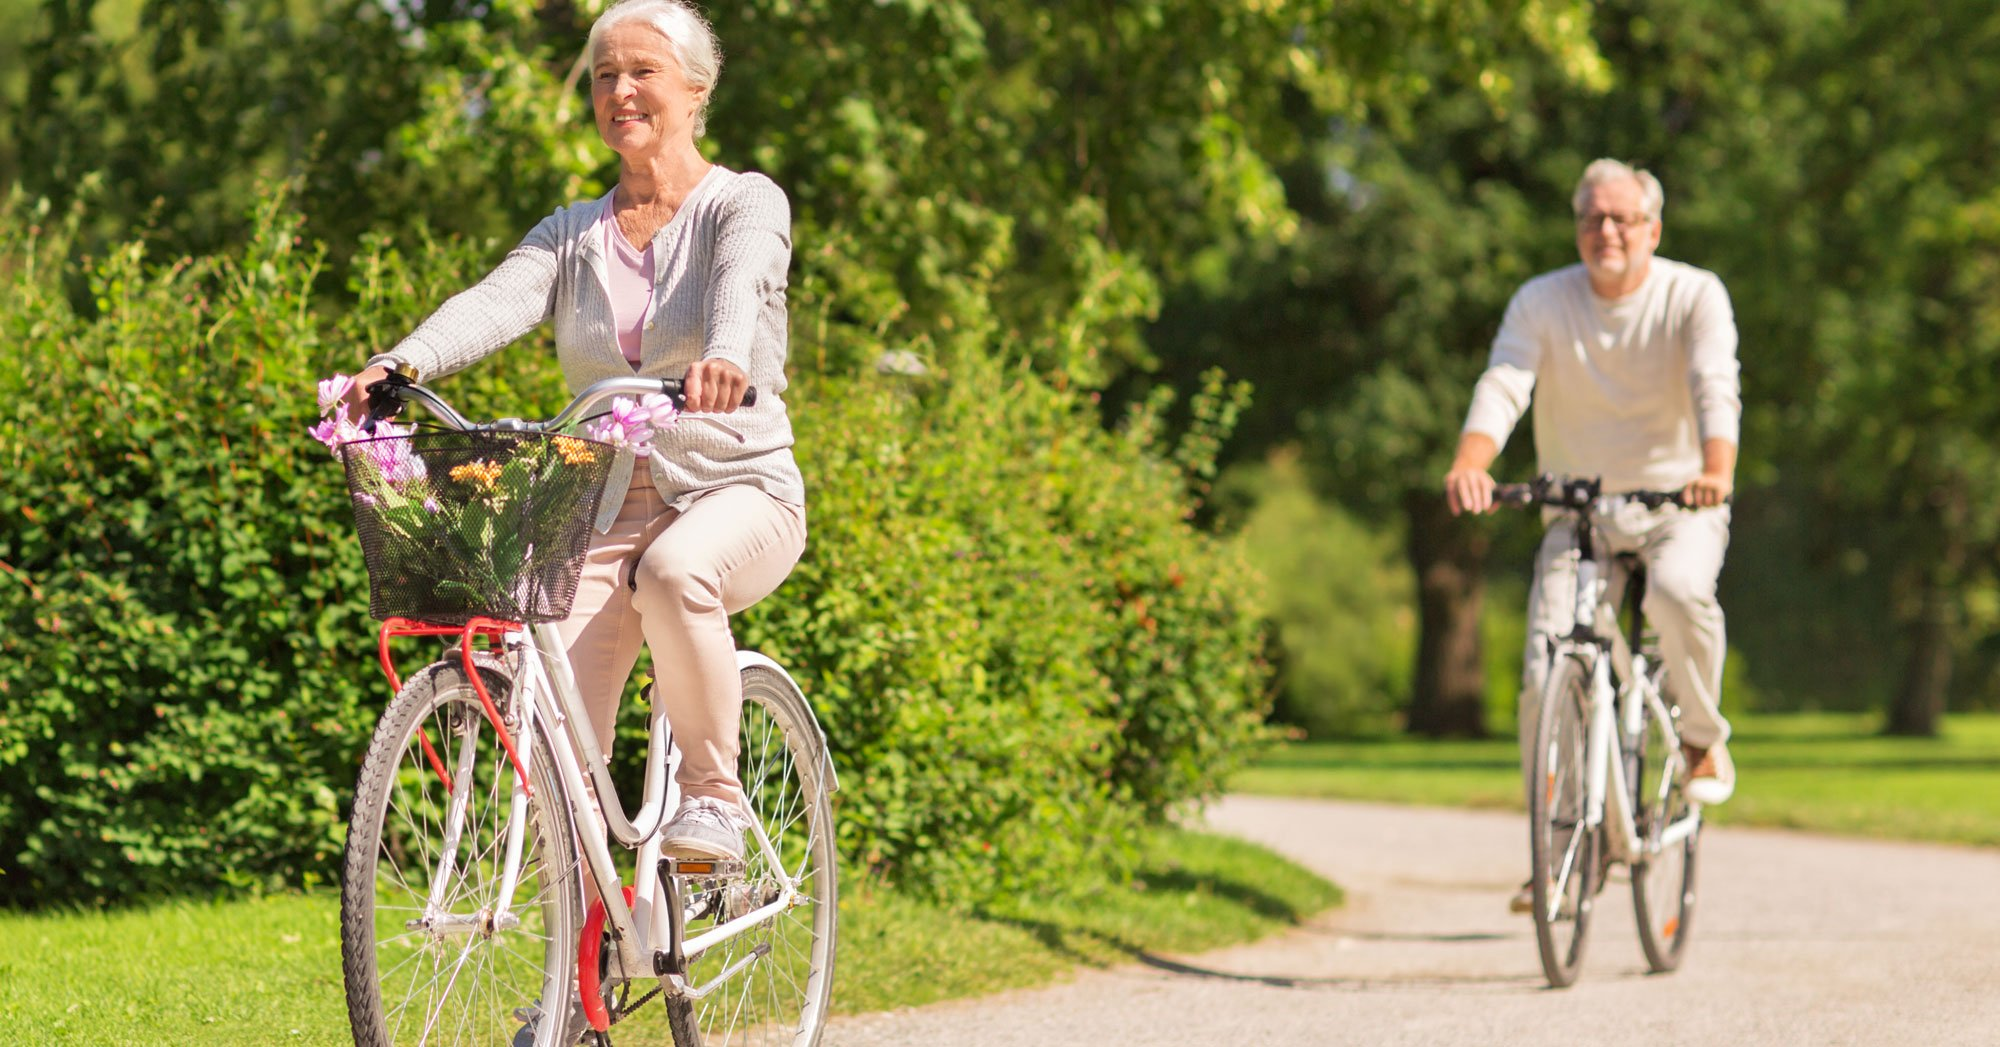 Active Aging and Wellness for Seniors